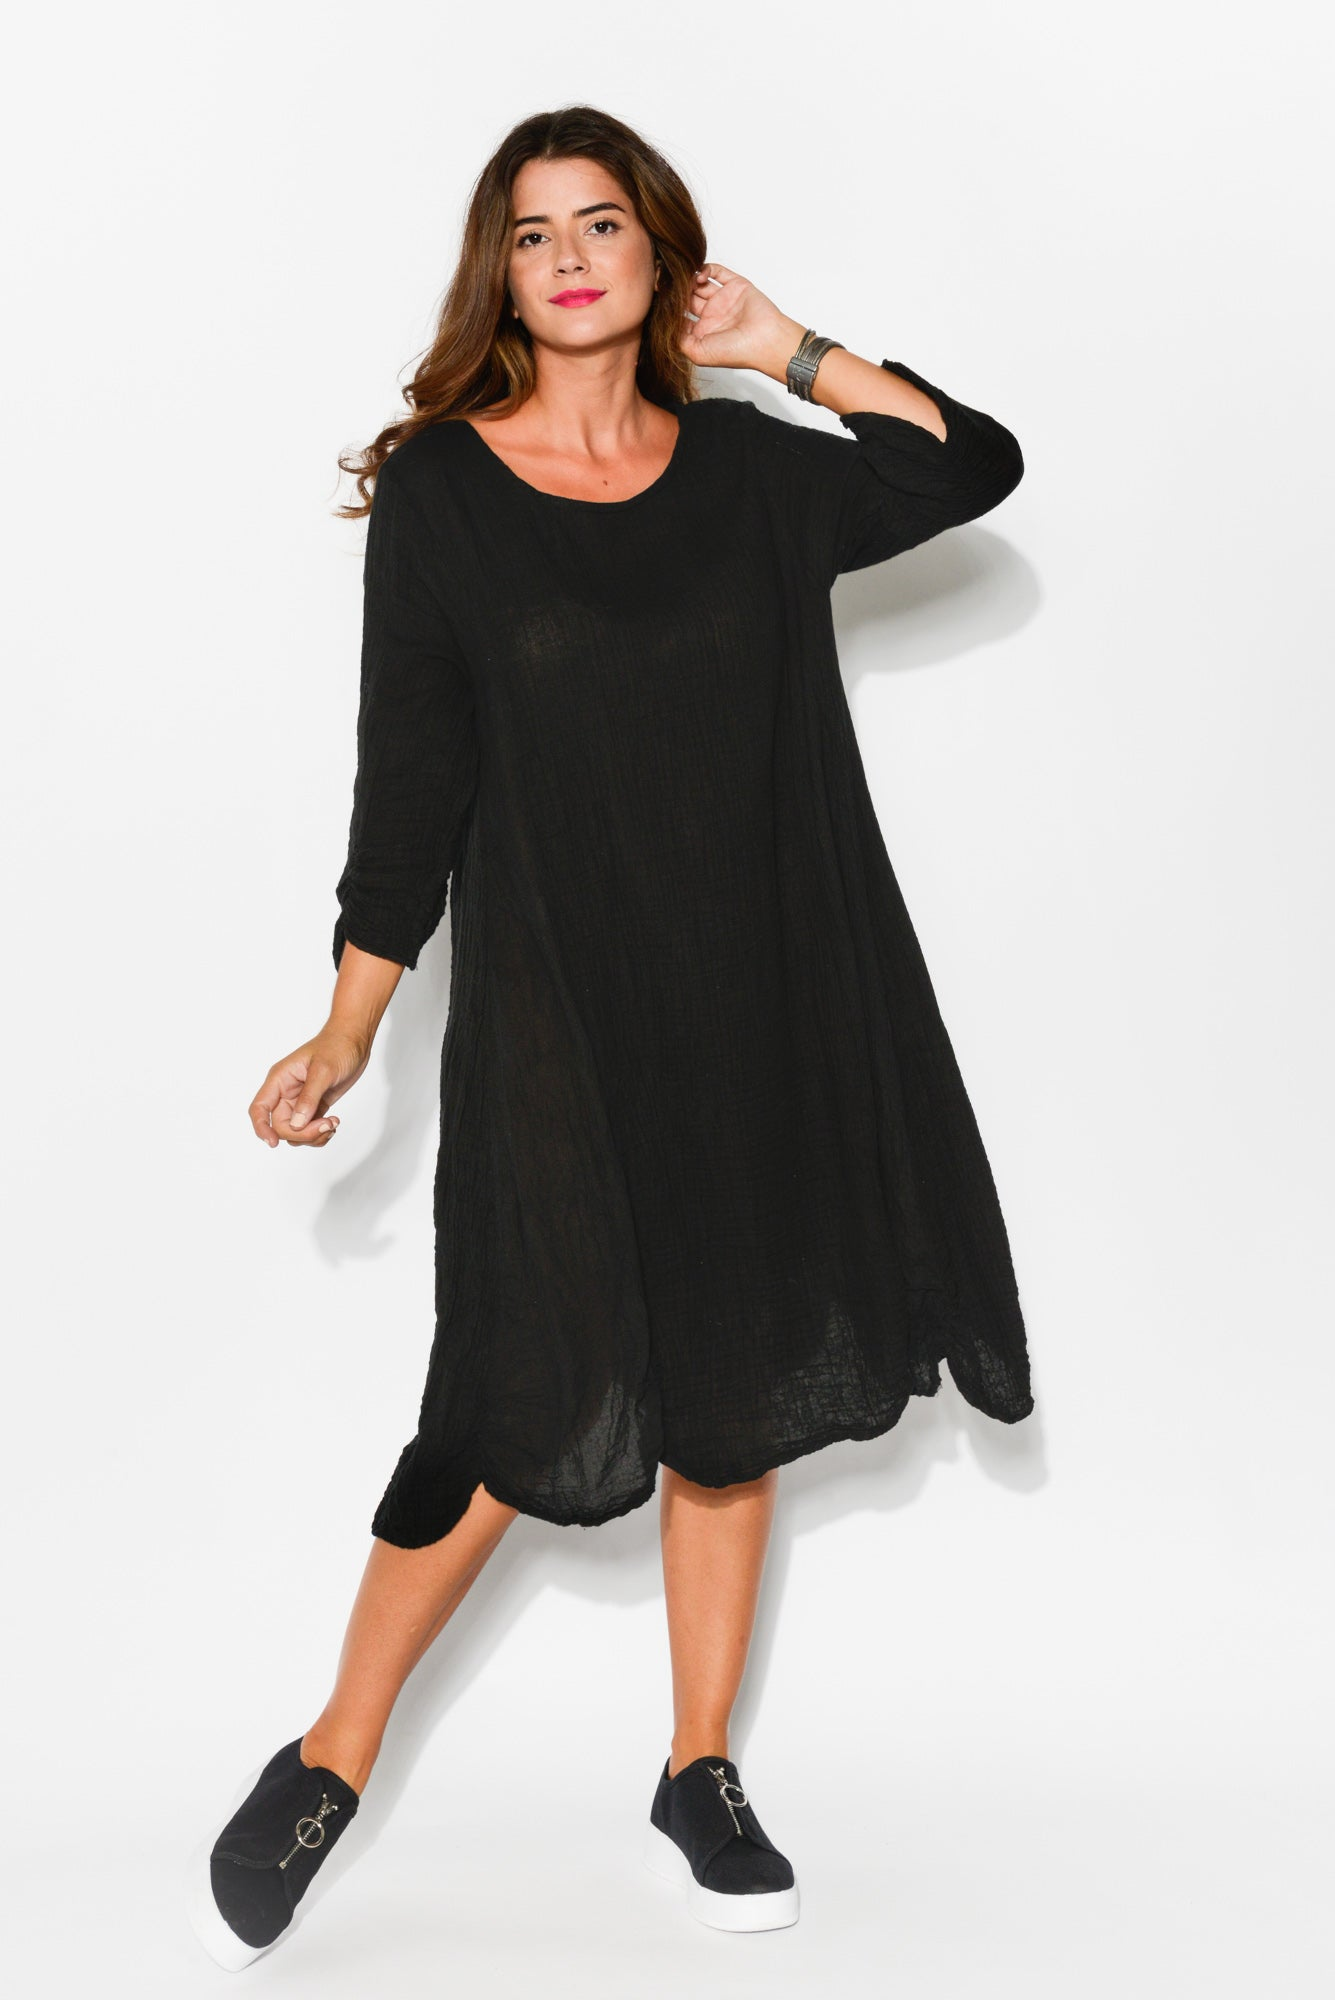 Eden Black Sleeved Crinkle Cotton Dress - Blue Bungalow